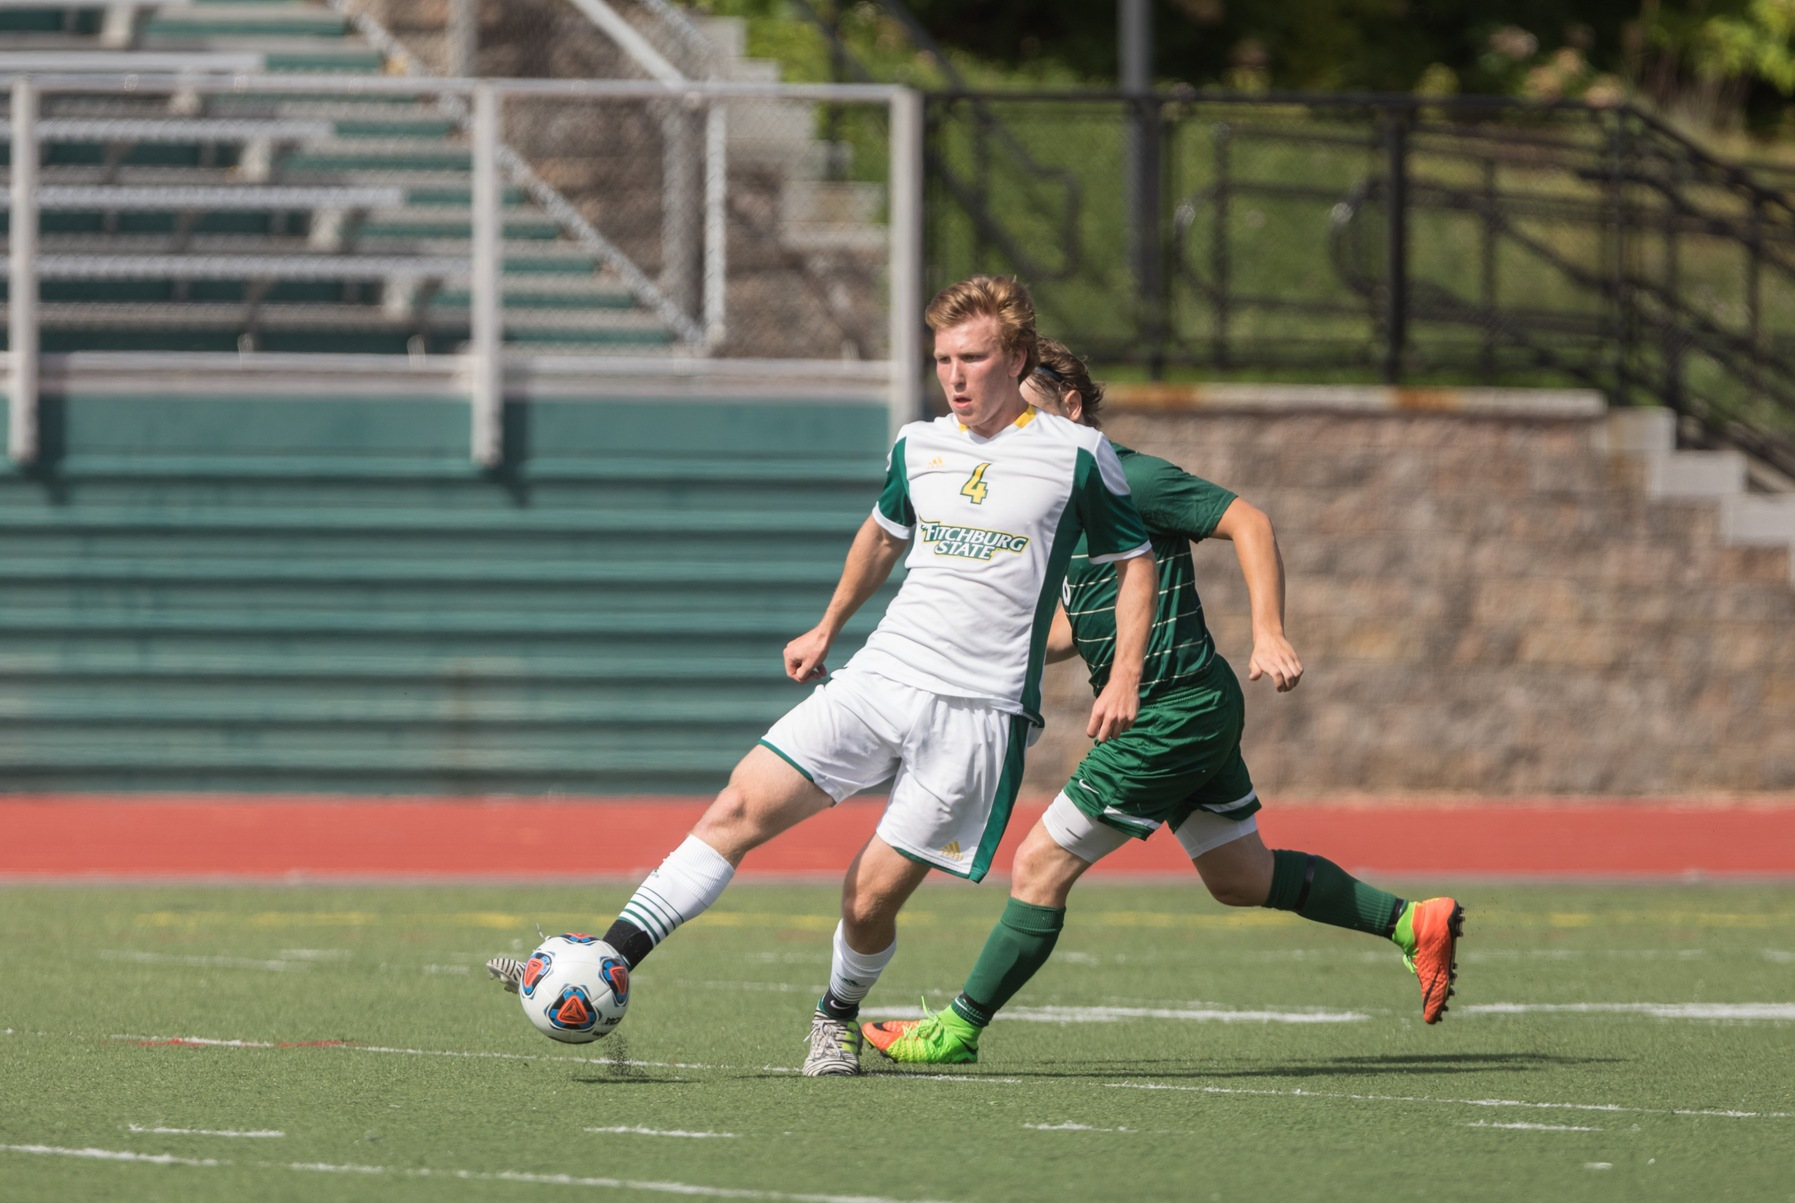 Falcons Blanked By Engineers, 2-0